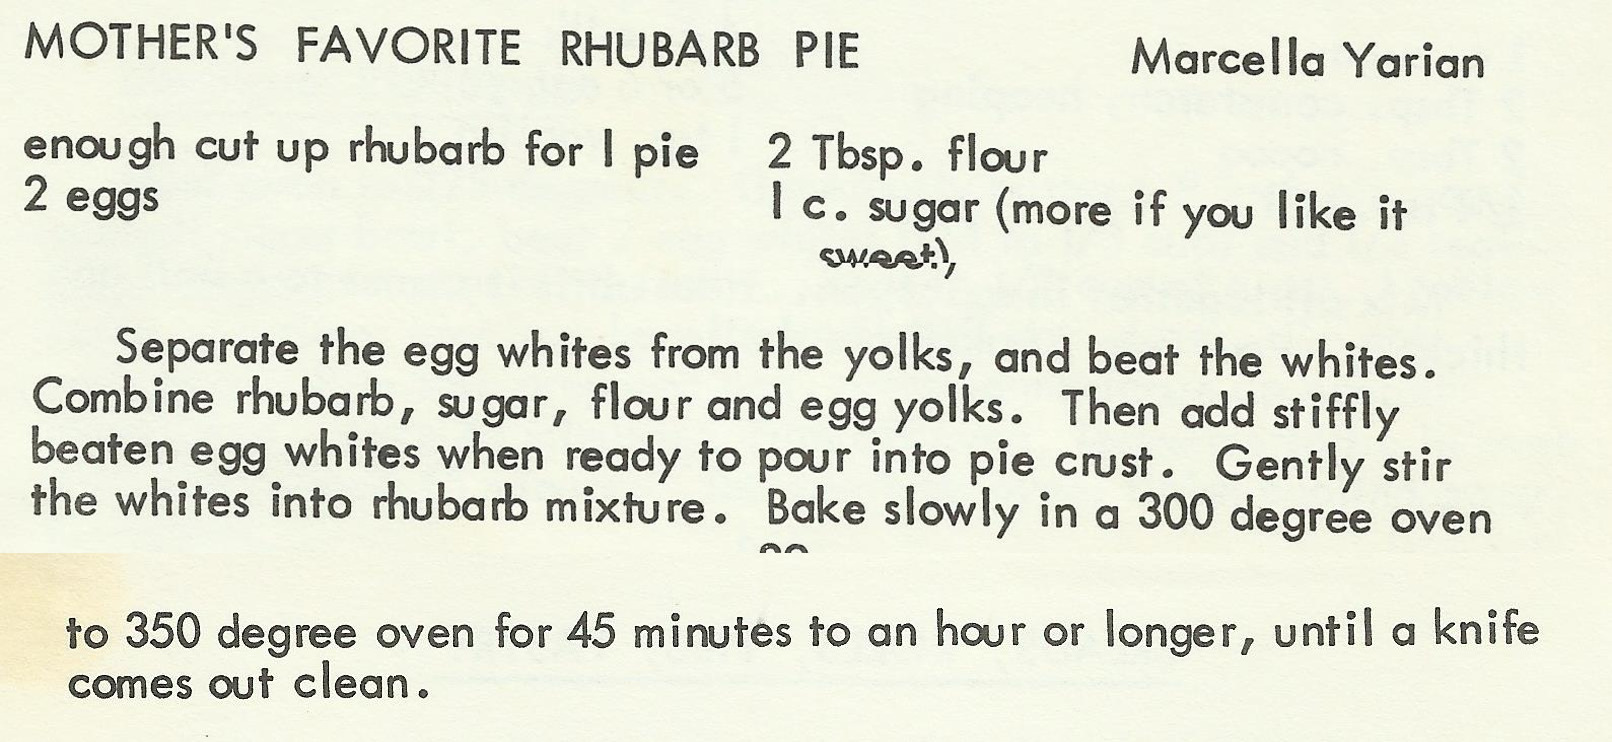 Mother's Favorite Rhubarb Pie